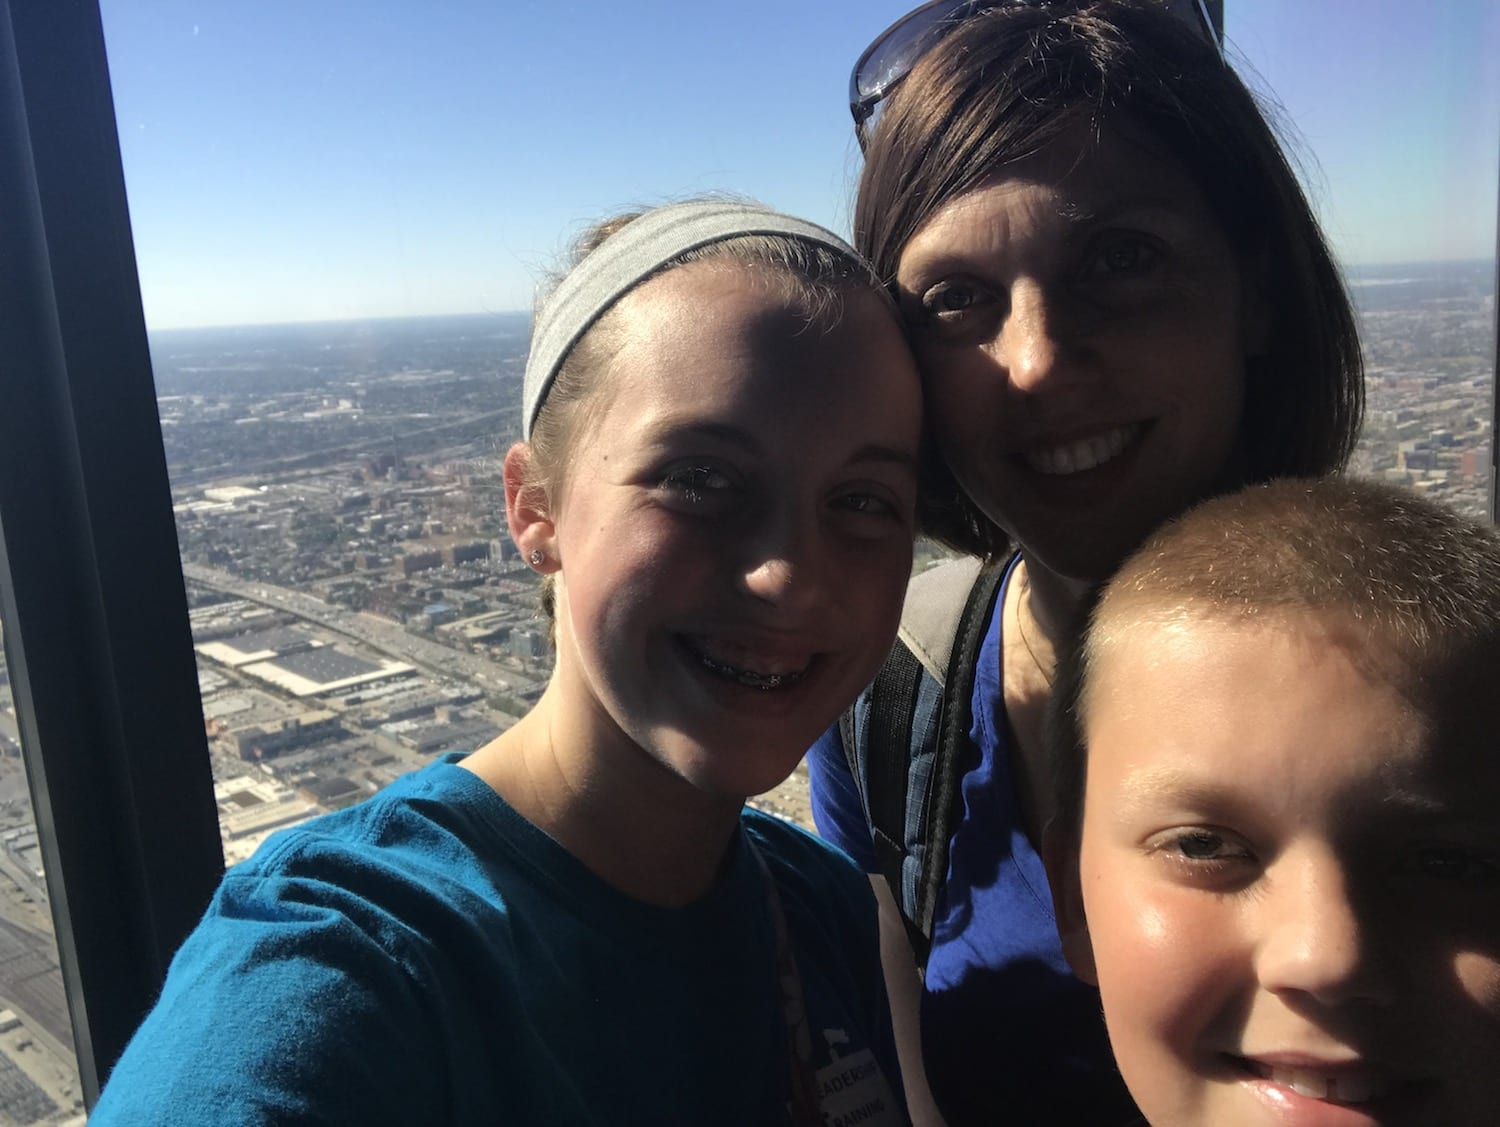 Sharon and kids at Willis Tower Chicago Illinois